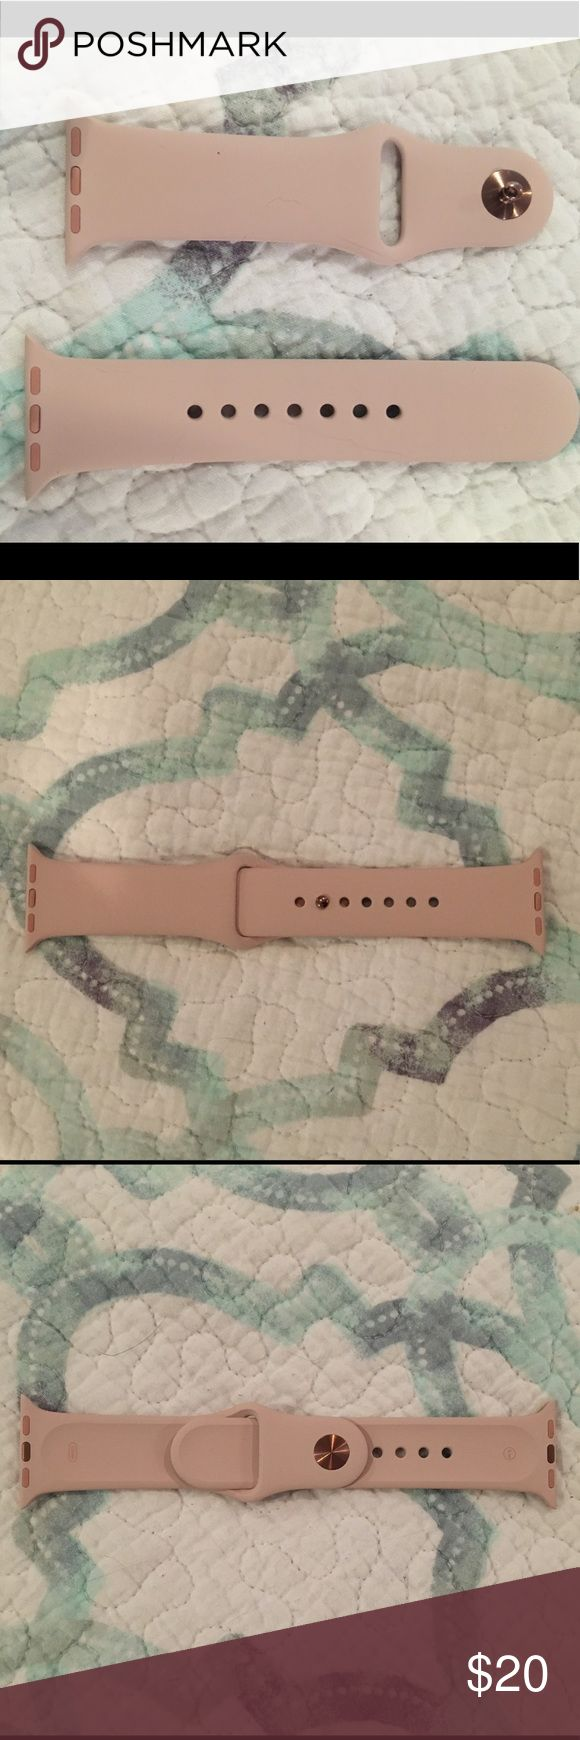 Apple 38mm Pink Sand Sport Band - S/M Brand new and never used. Fits 130–200mm wrists. Comes with original packaging. Price firm. Apple Accessories Watches